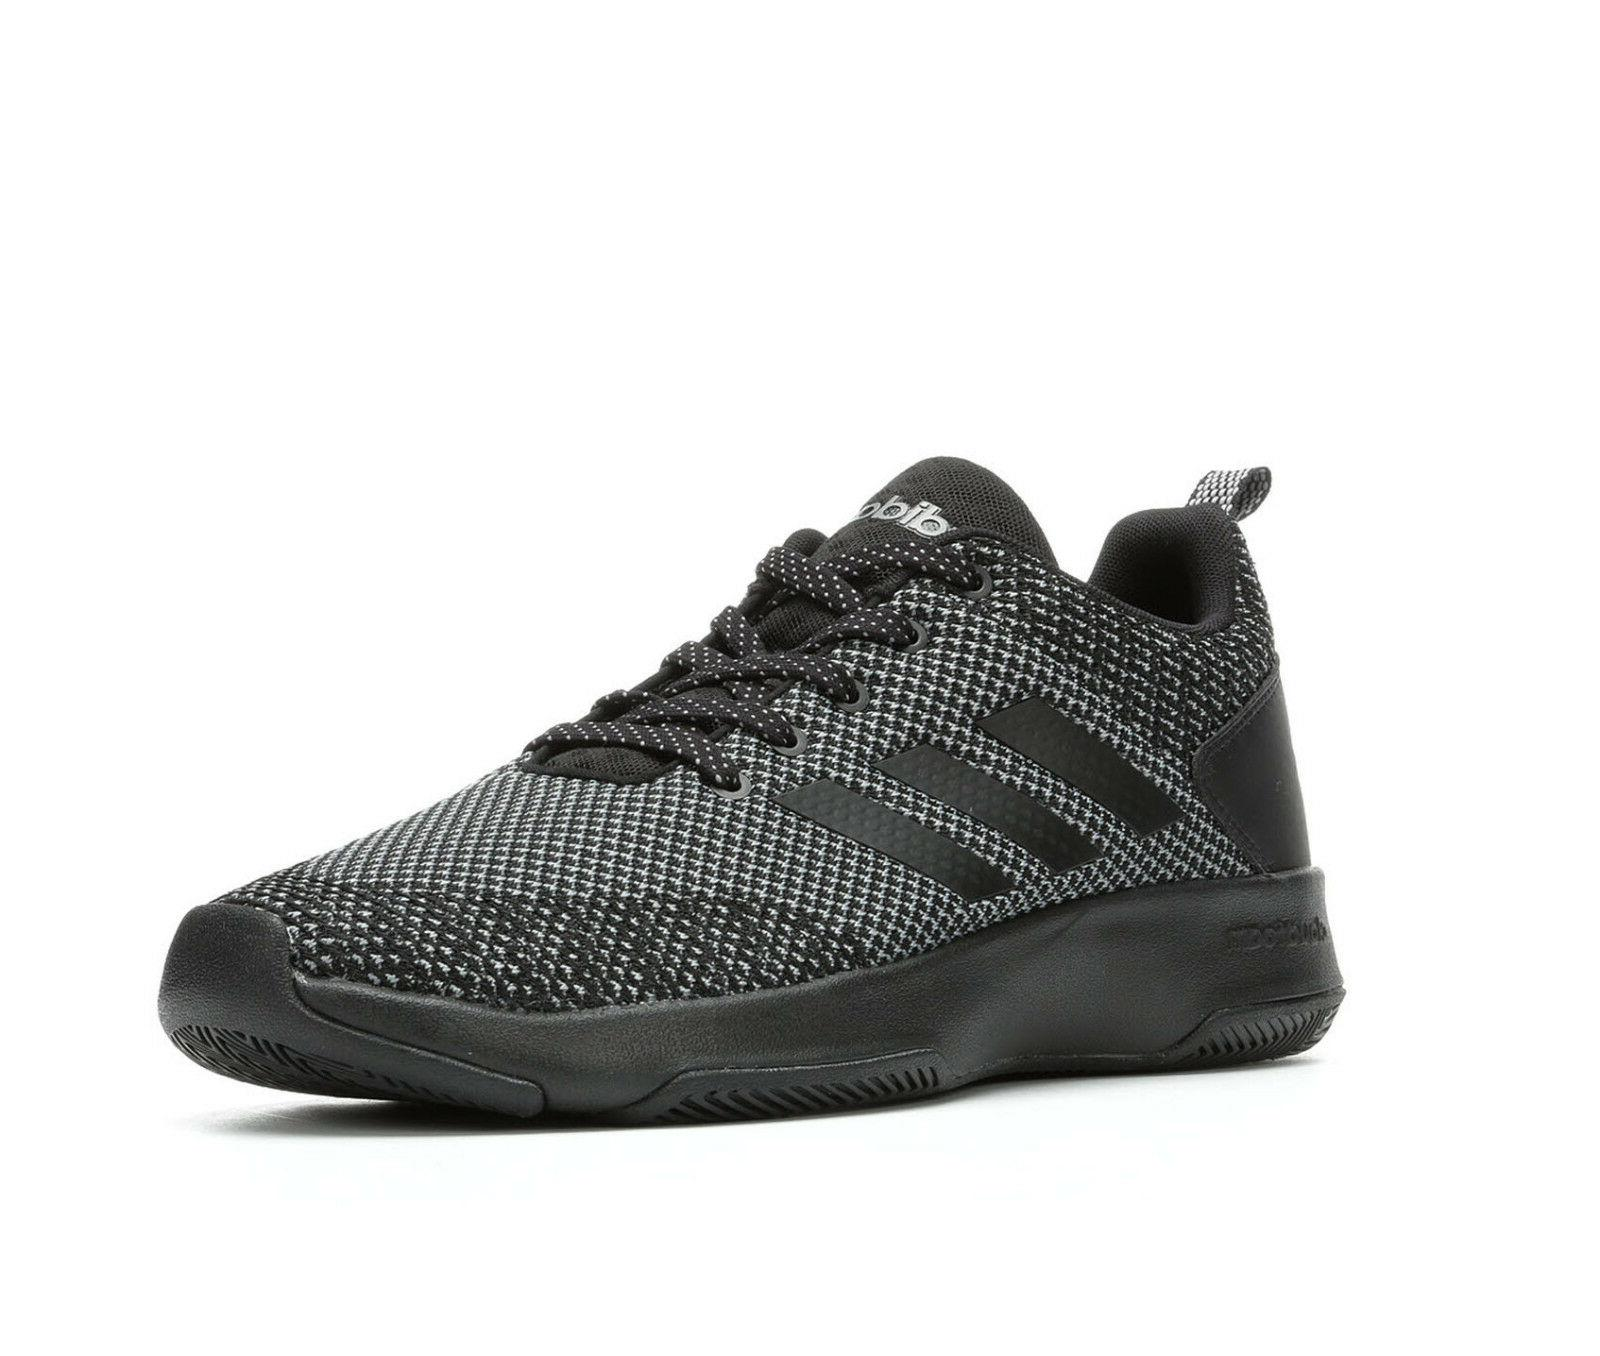 men executor basketball shoes db0600 black black